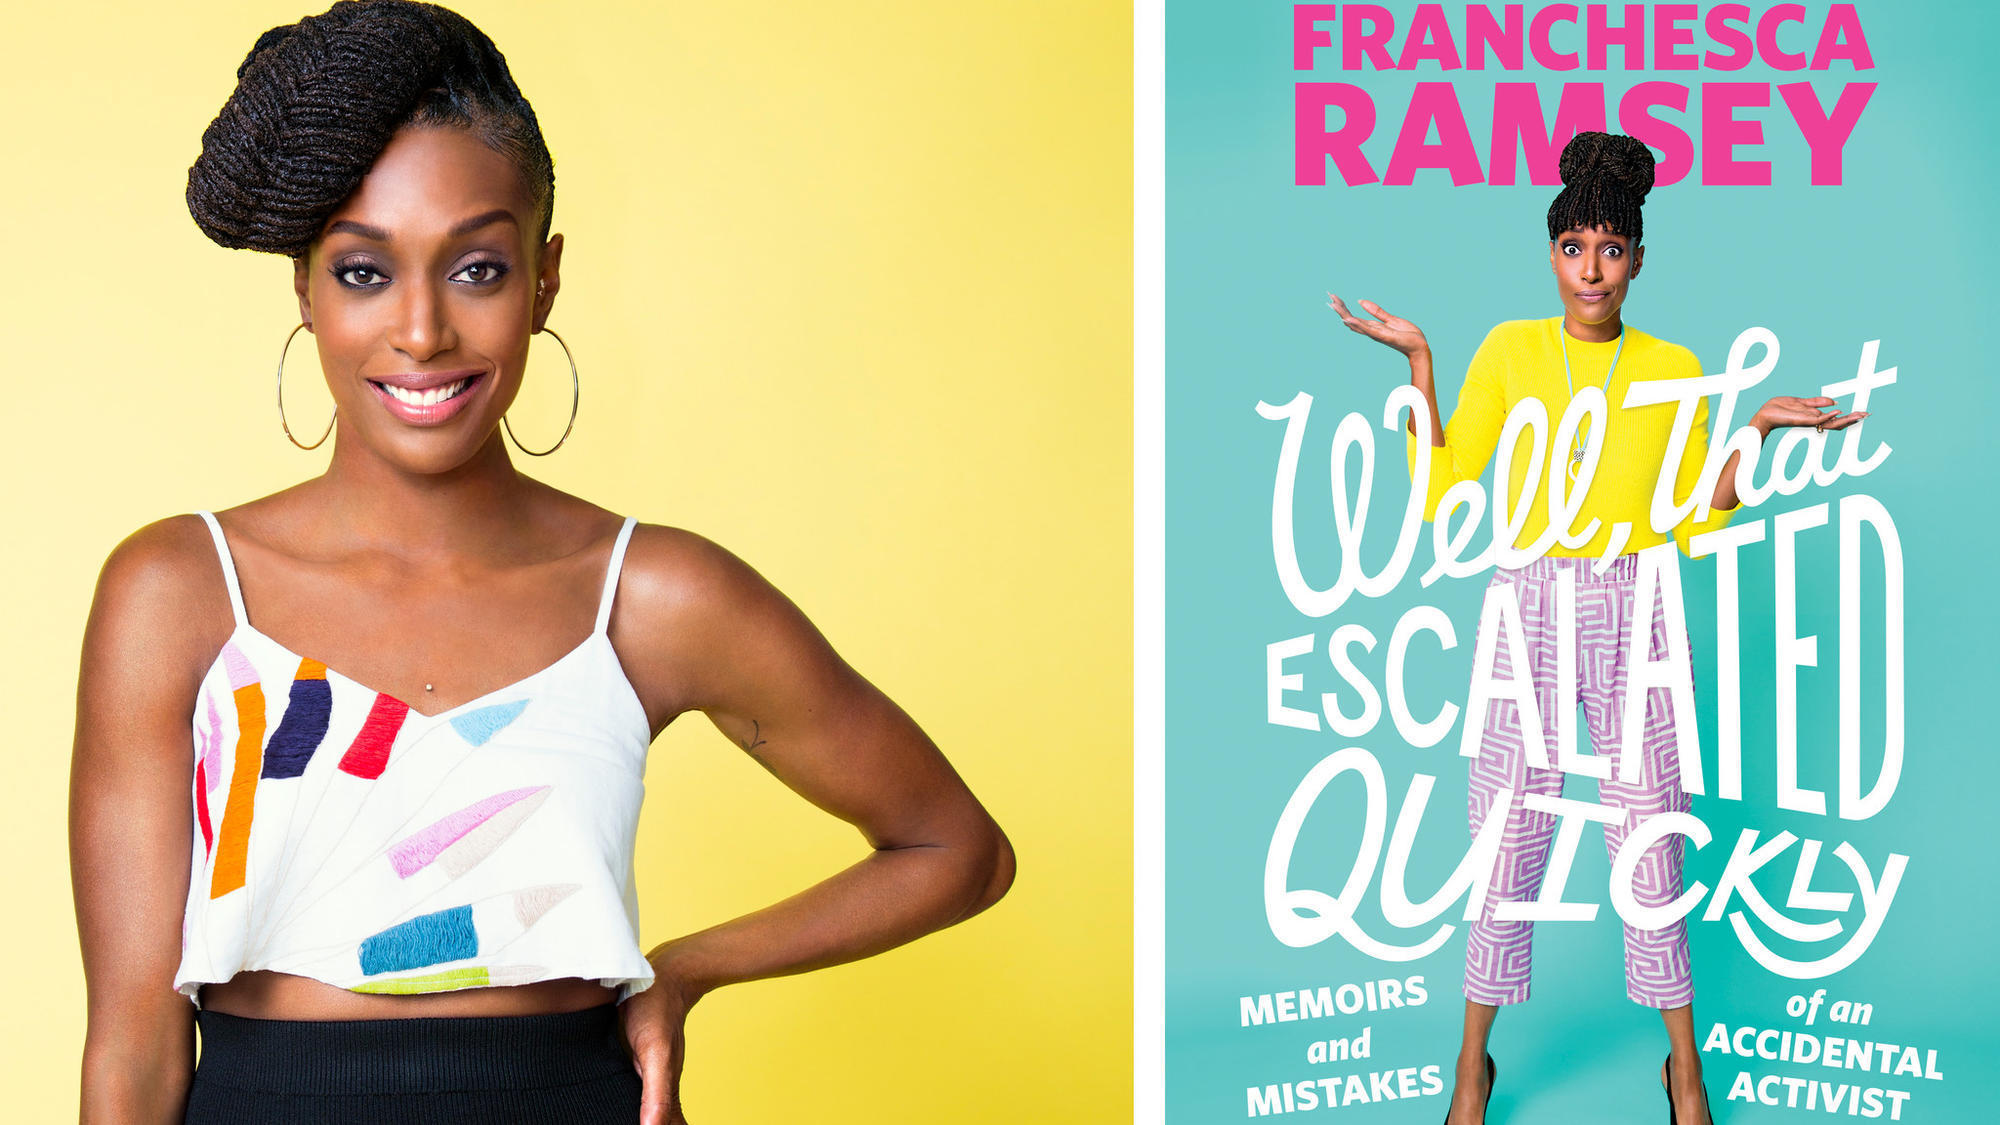 Watch Franchesca Ramsey video